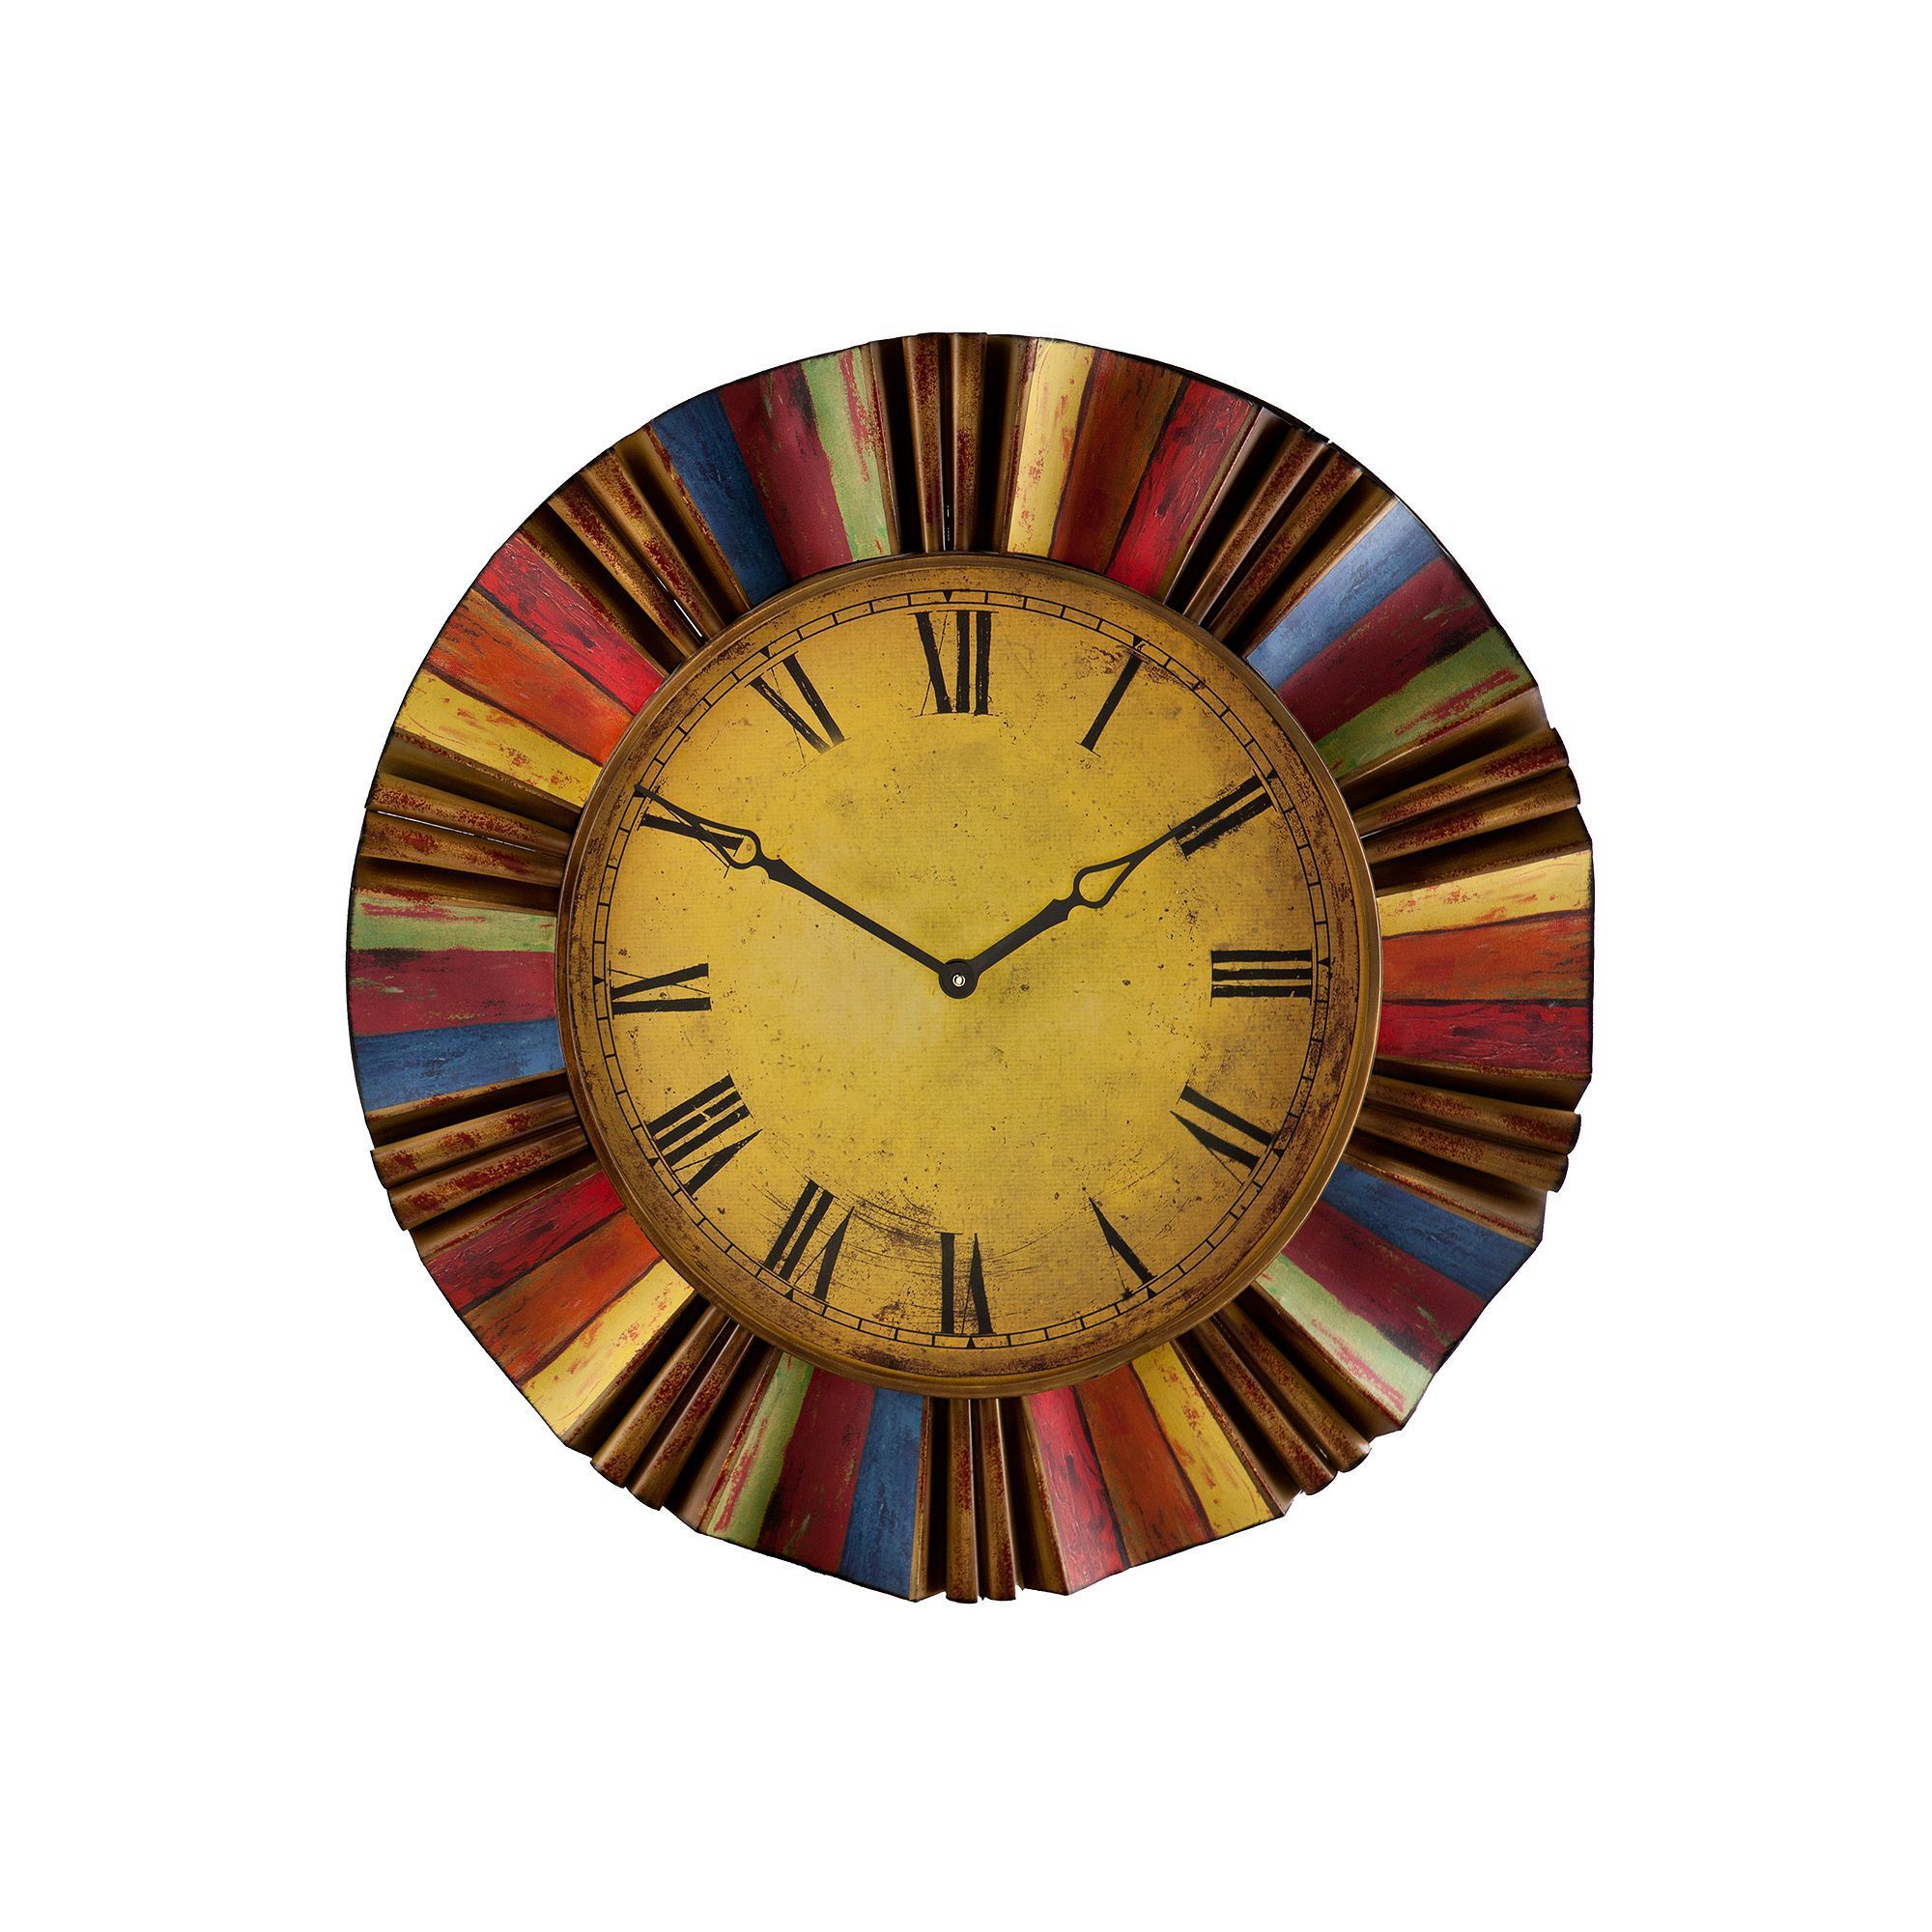 Harland Multicolor Wall Clock | Products by Kohl\'s | Pinterest ...